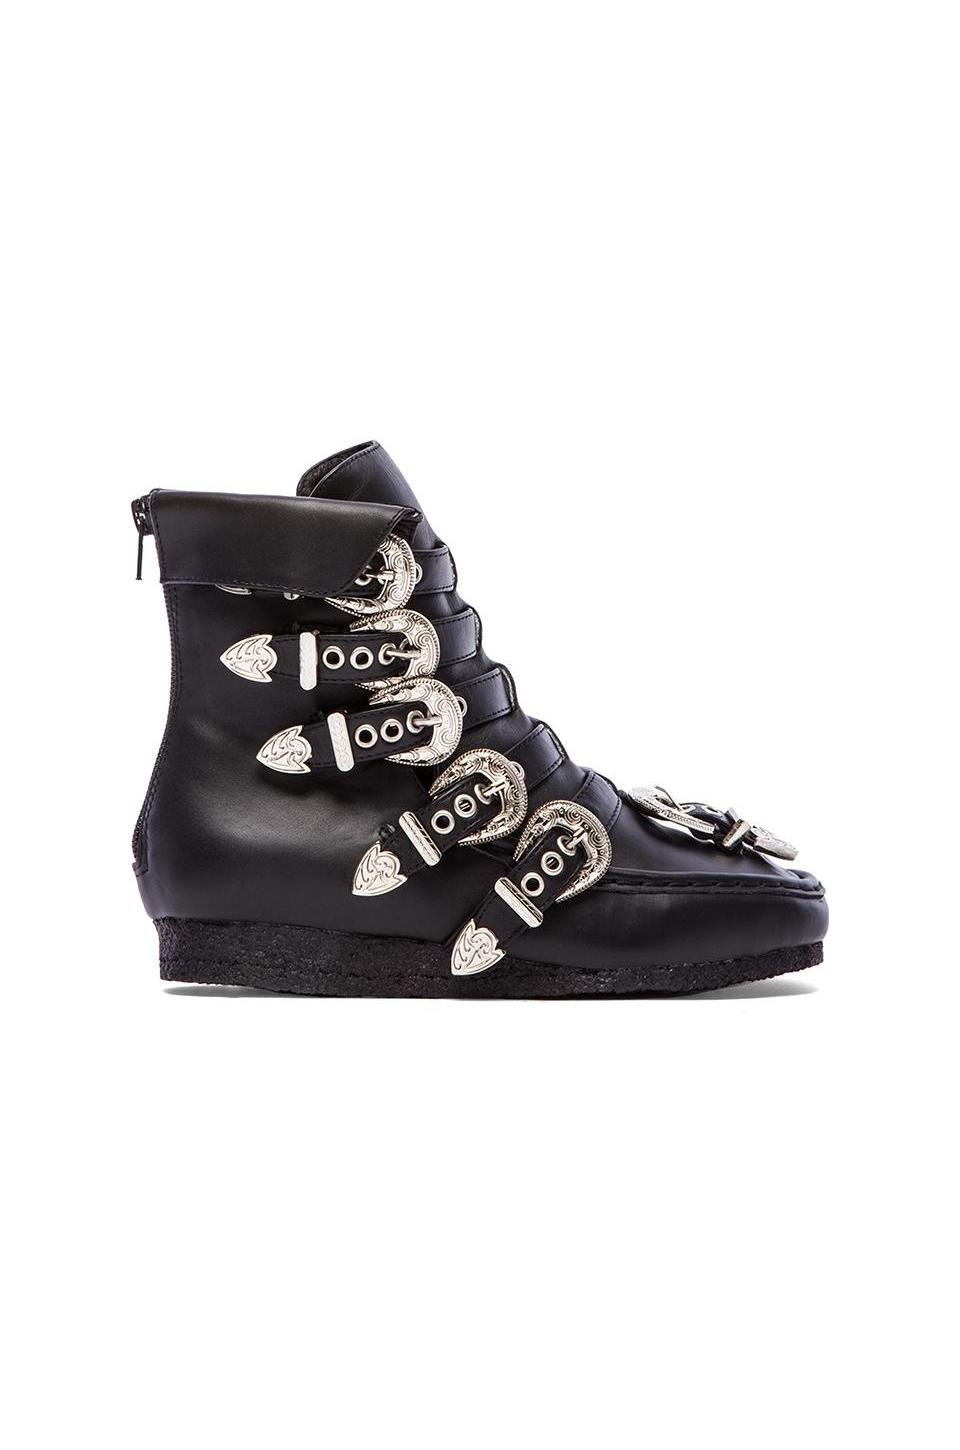 Jeffrey Campbell Mandinko Embellished Sneaker in Black & Silver